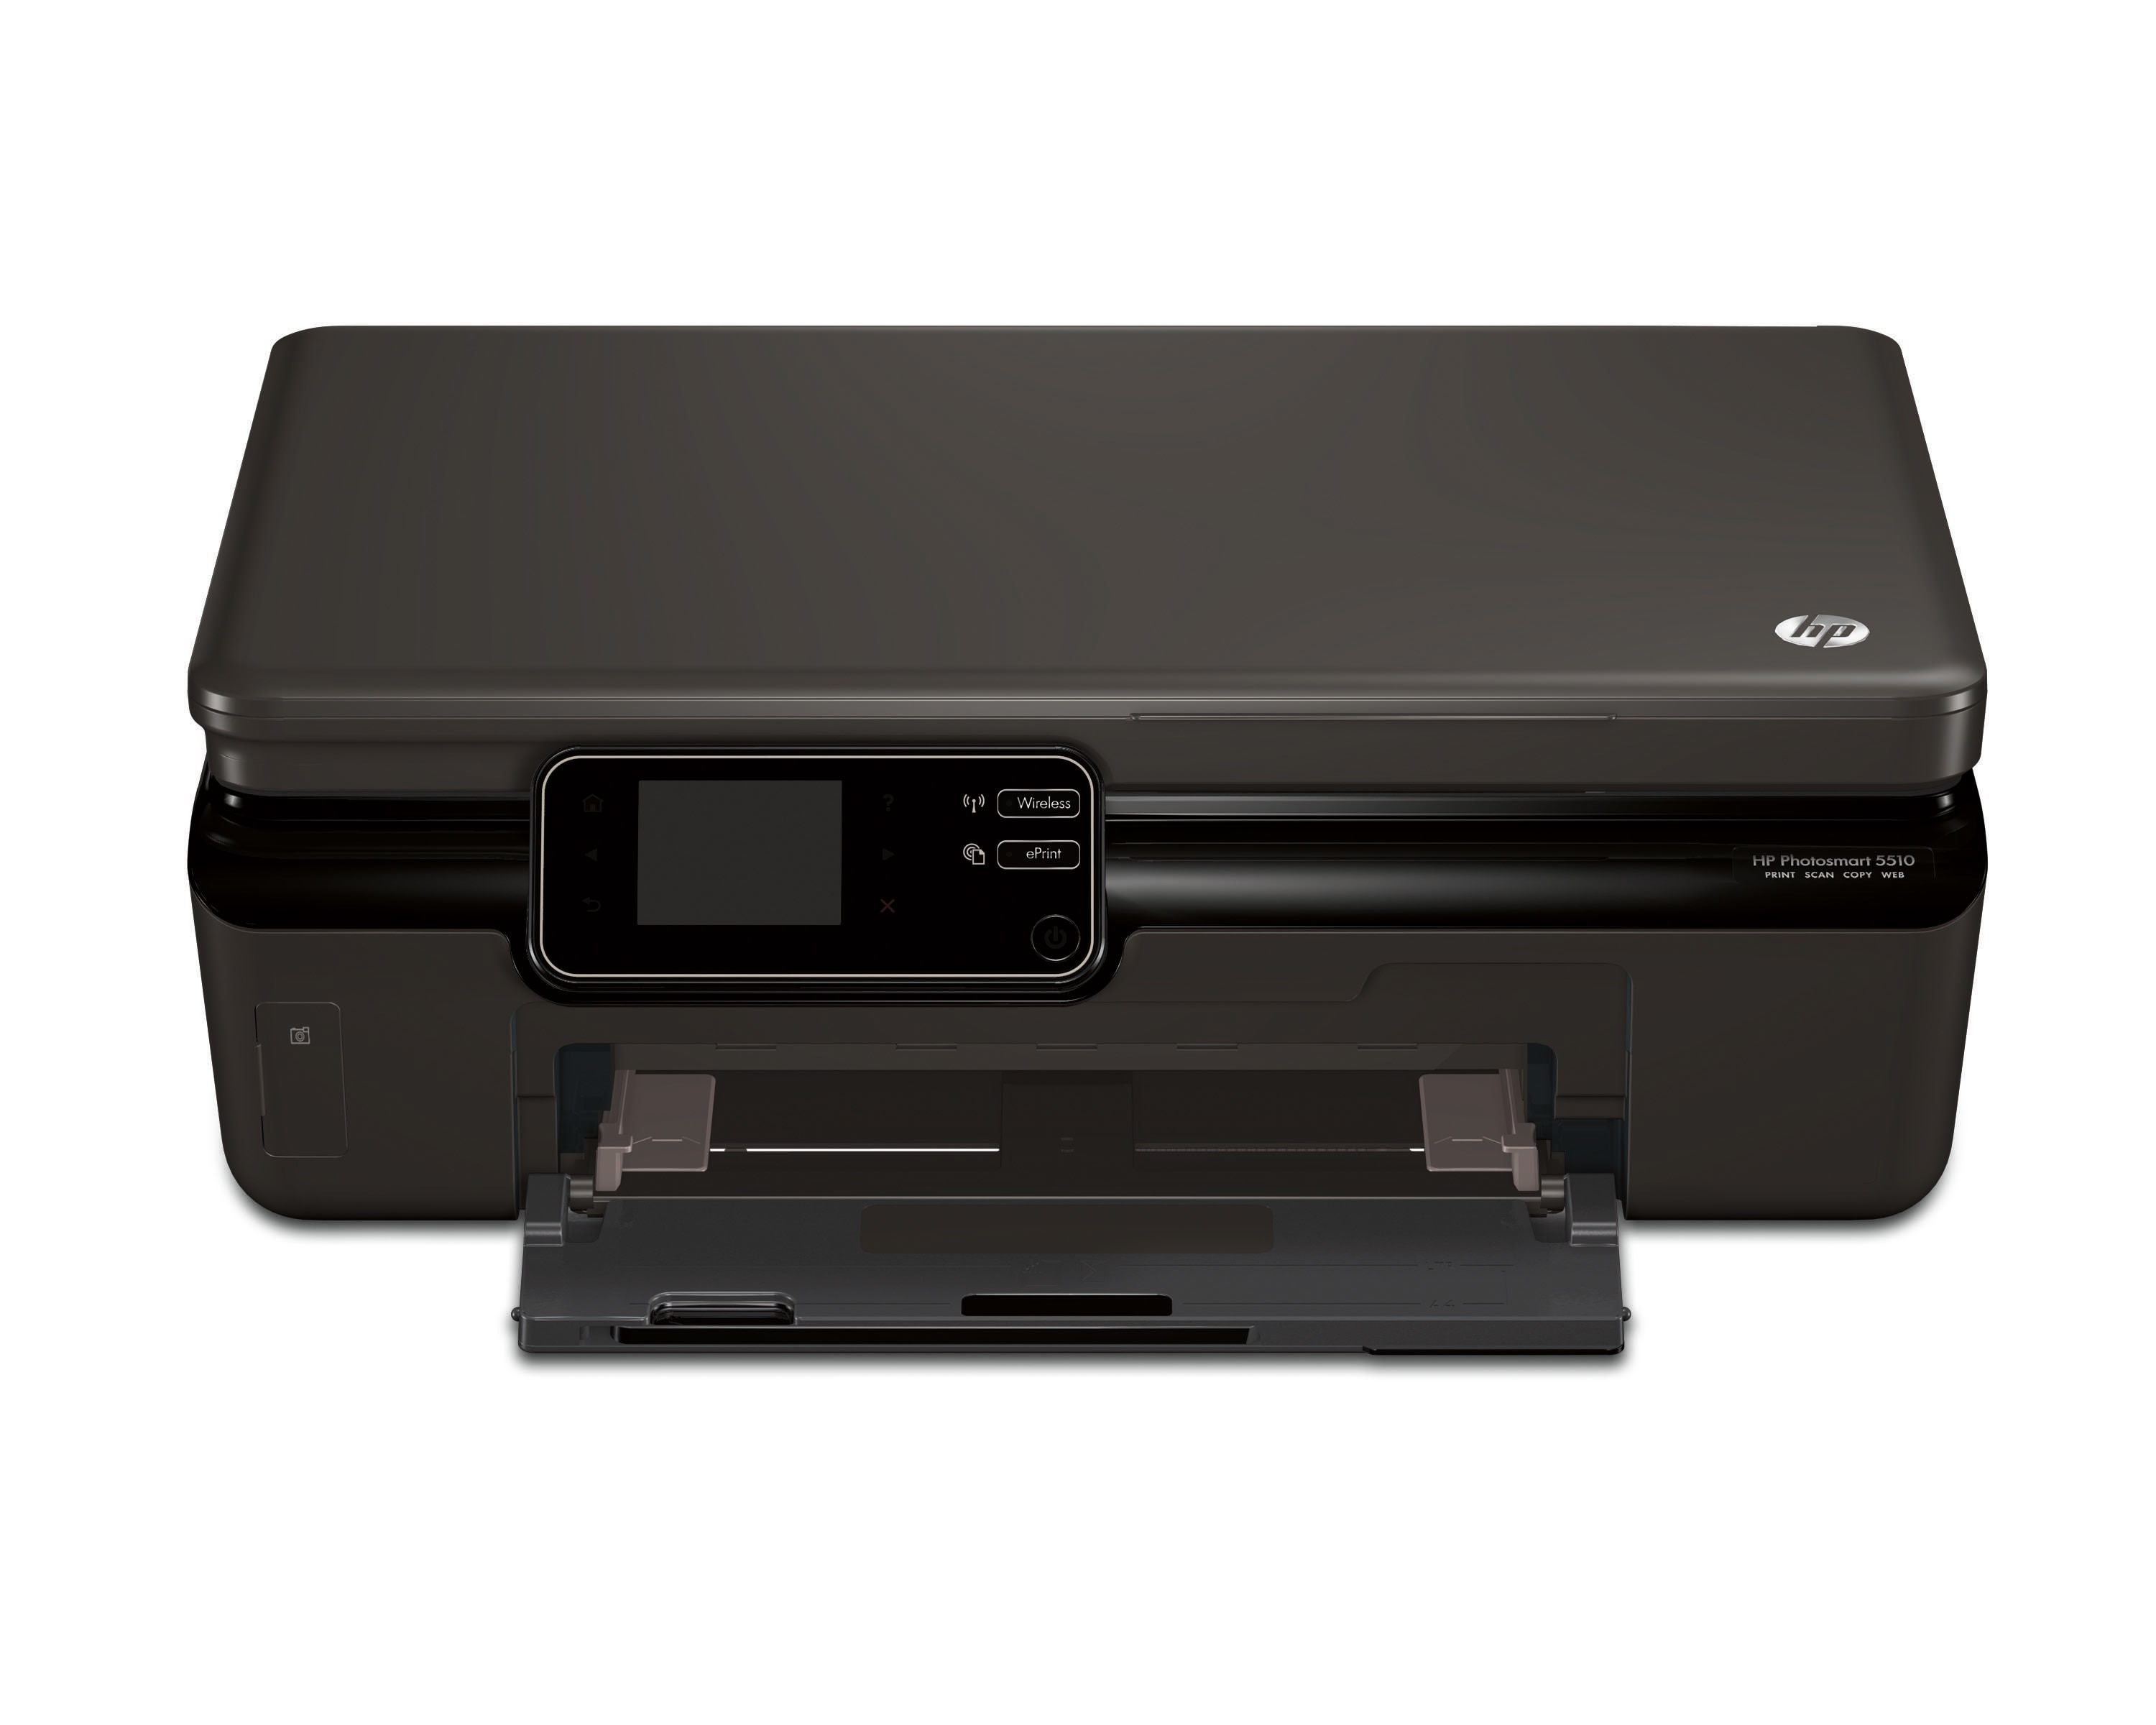 CQ183B HP Photosmart 5515 Printer - Refurbished with 3 months RTB warranty